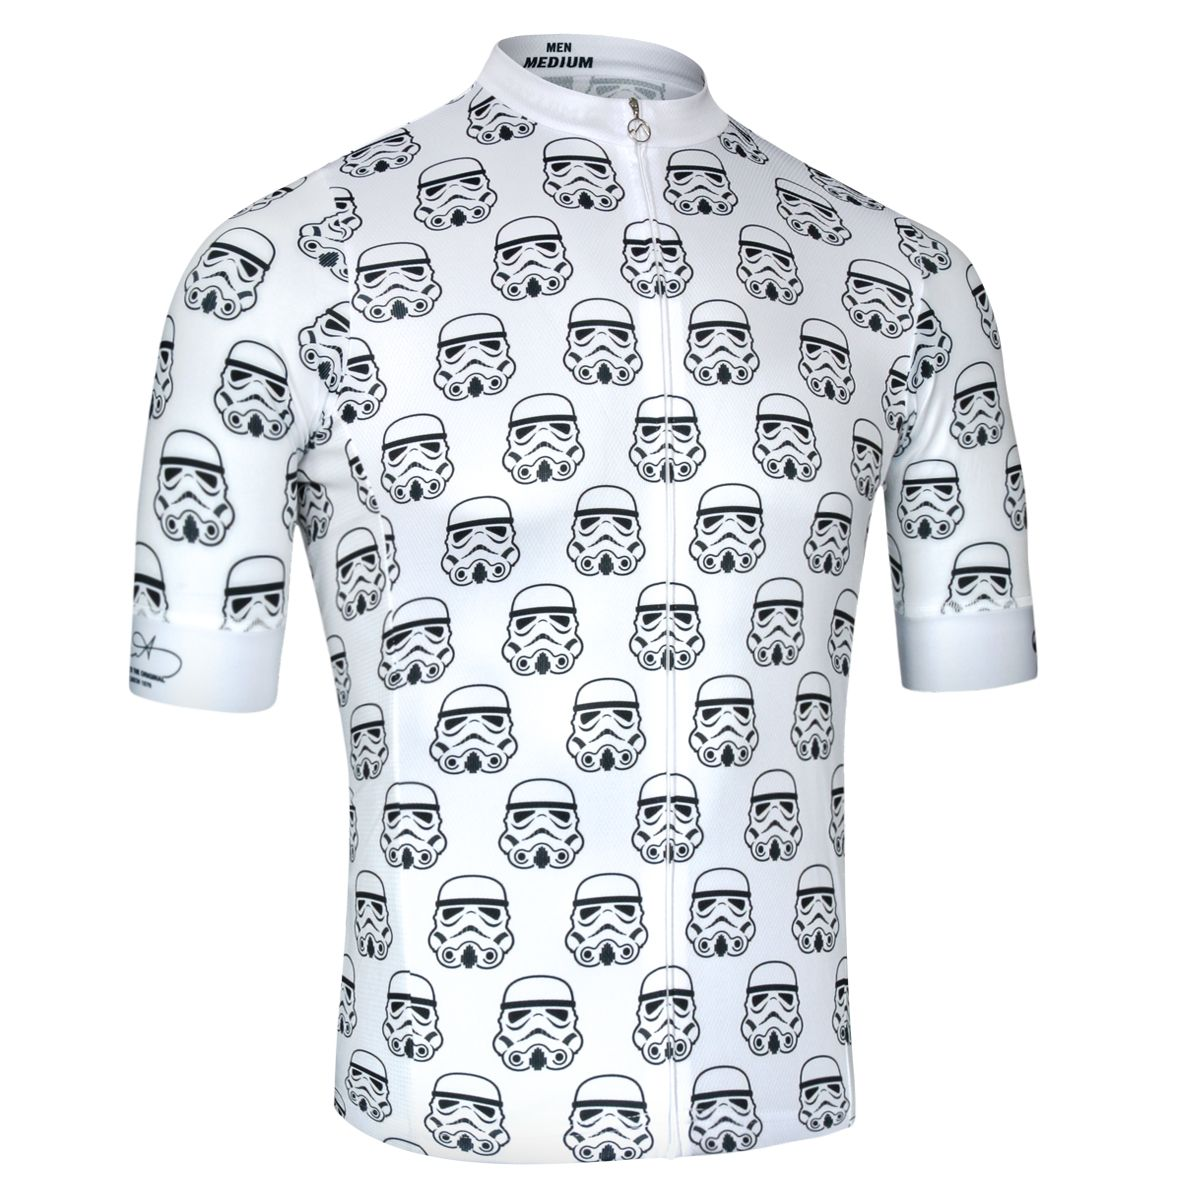 Stormtrooper Garrison - Short Sleeve Cycling Jersey by Milltag